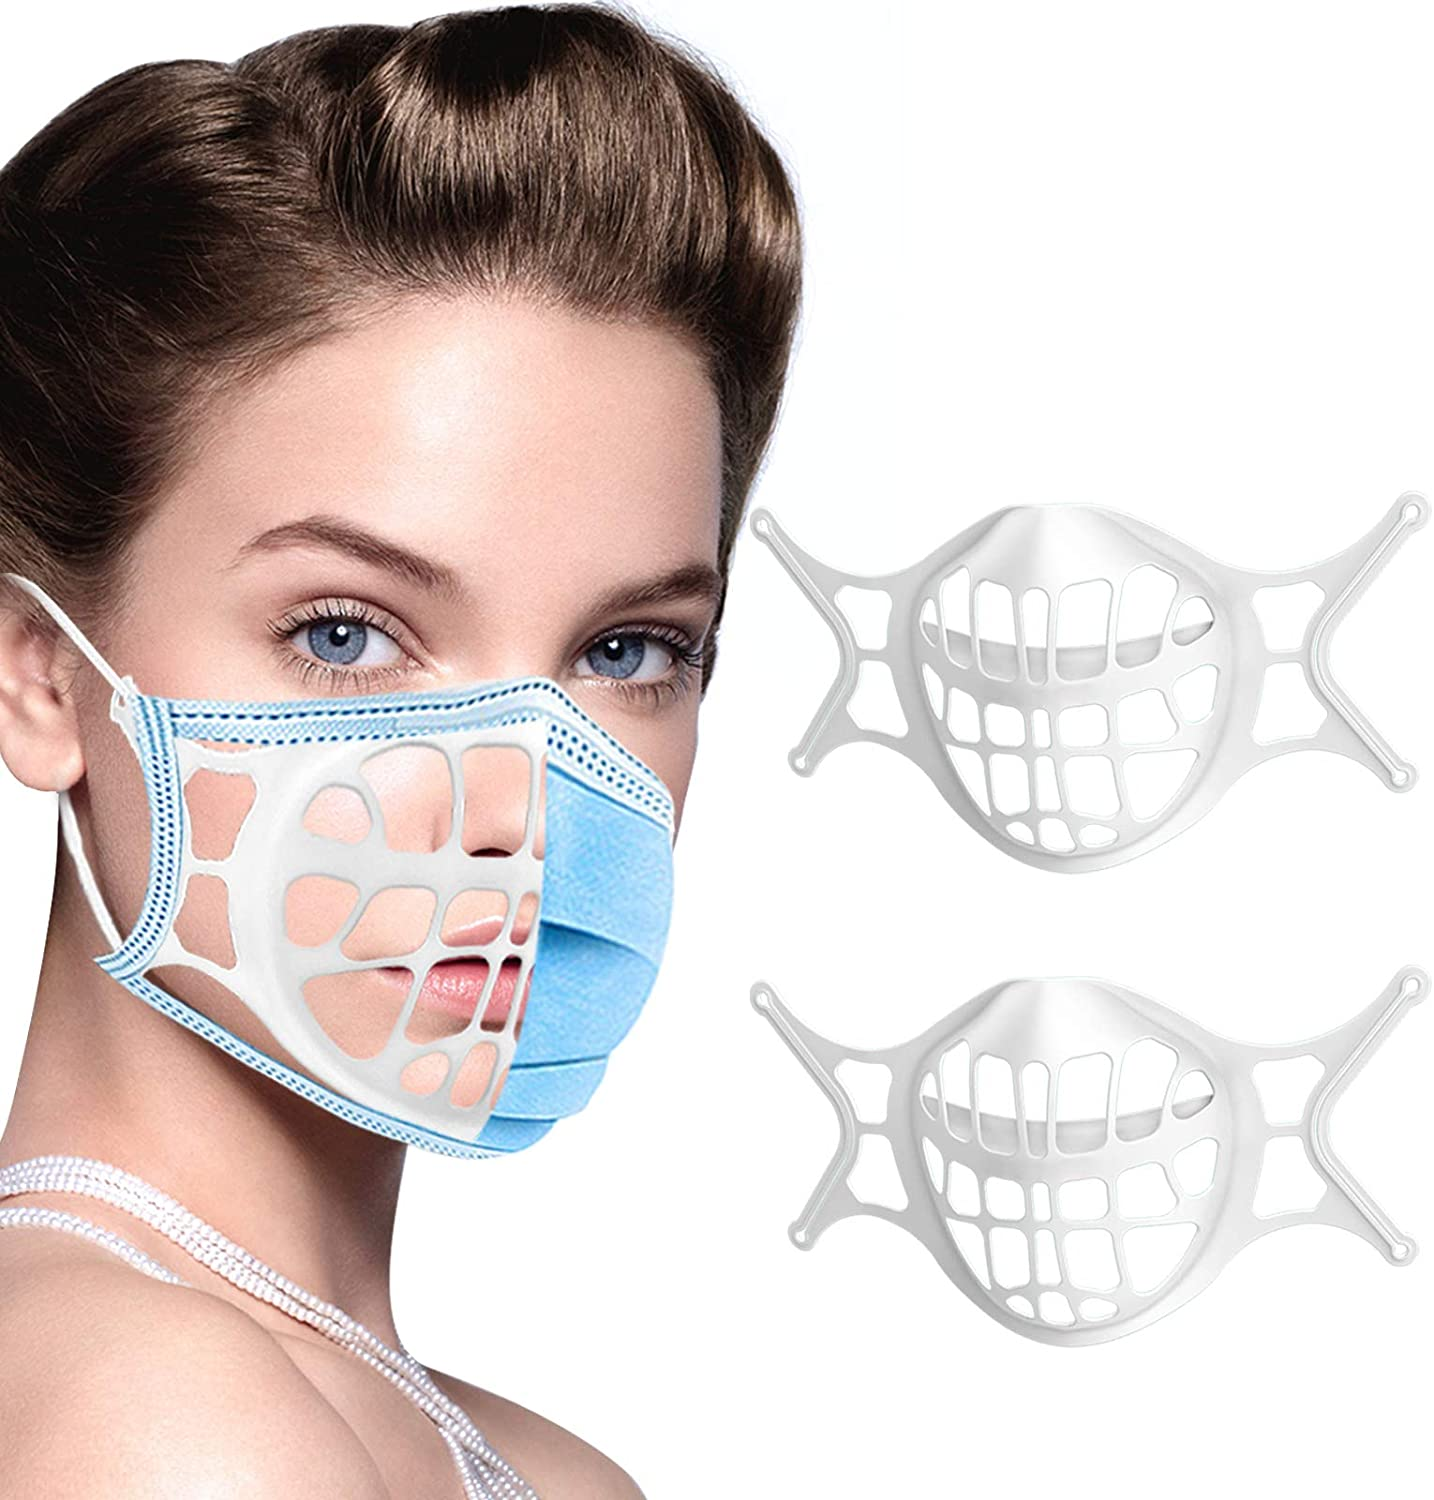 3D Mask Bracket -Silicone Face Mask Bracket-3D Mask Bracket Inner Support Frame for More Breathing Space,Keep Fabric off Mouth,Cool Lipstick Protection Stand,Reusable&Washable (2PCS-WHITE)